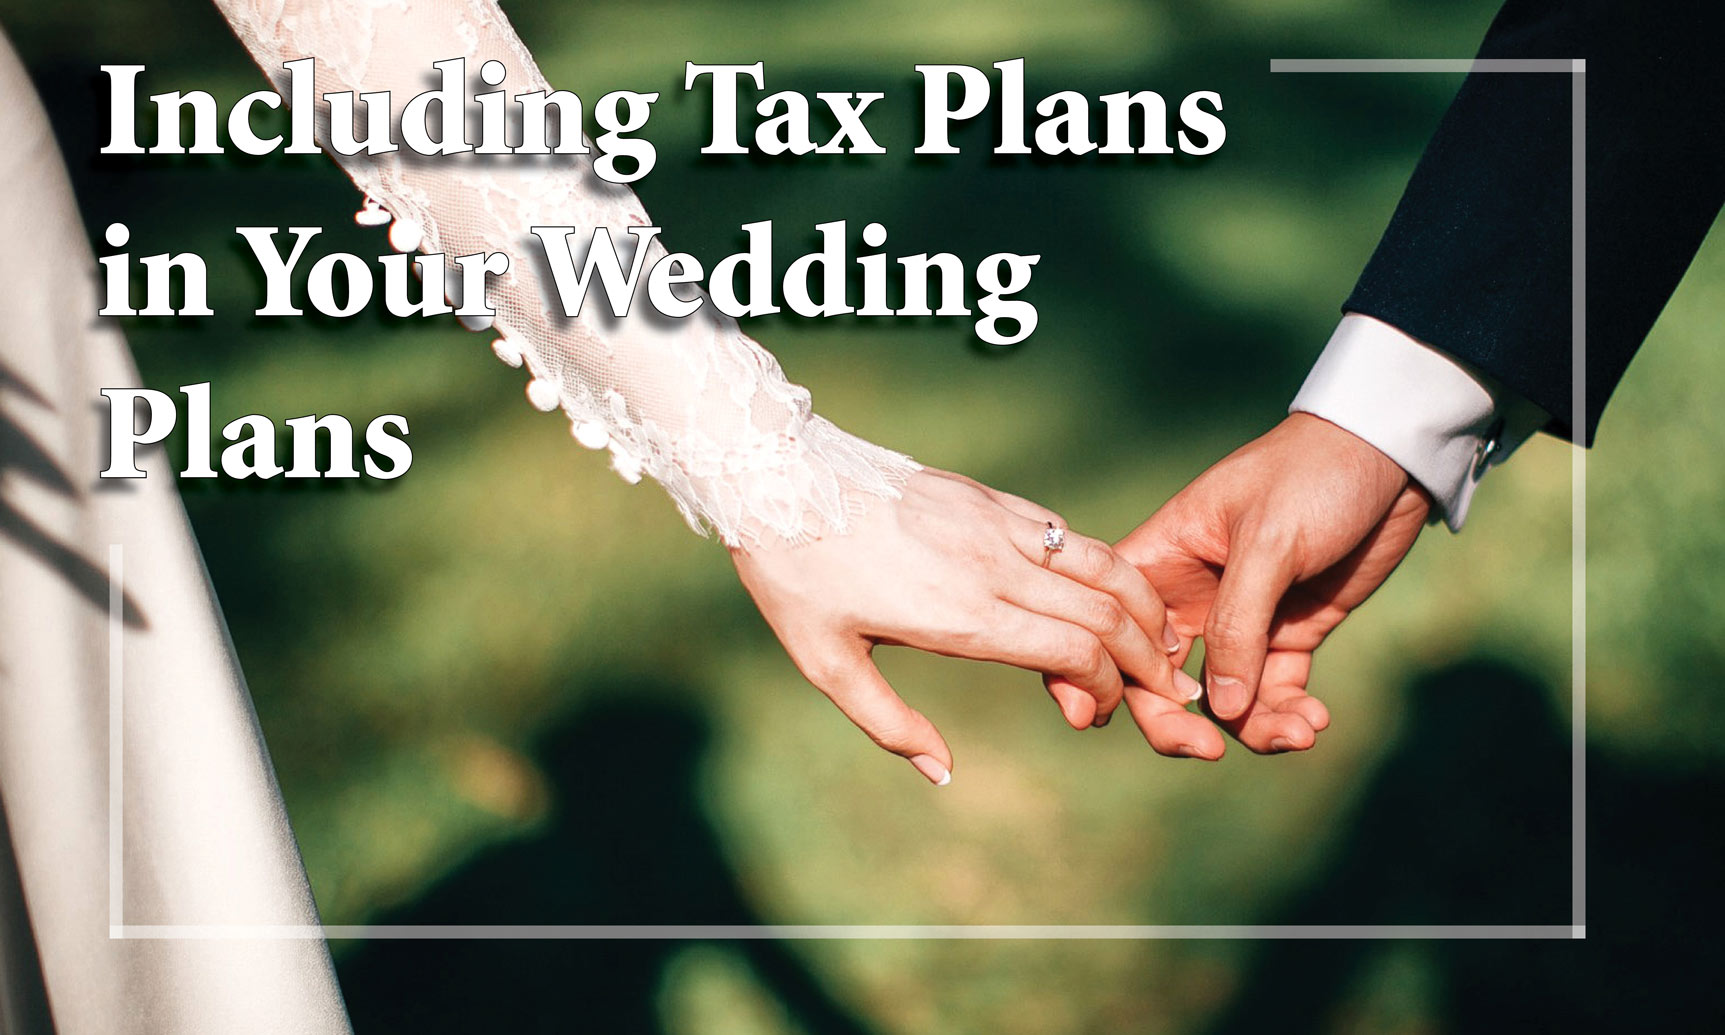 Wedding Tax Plans